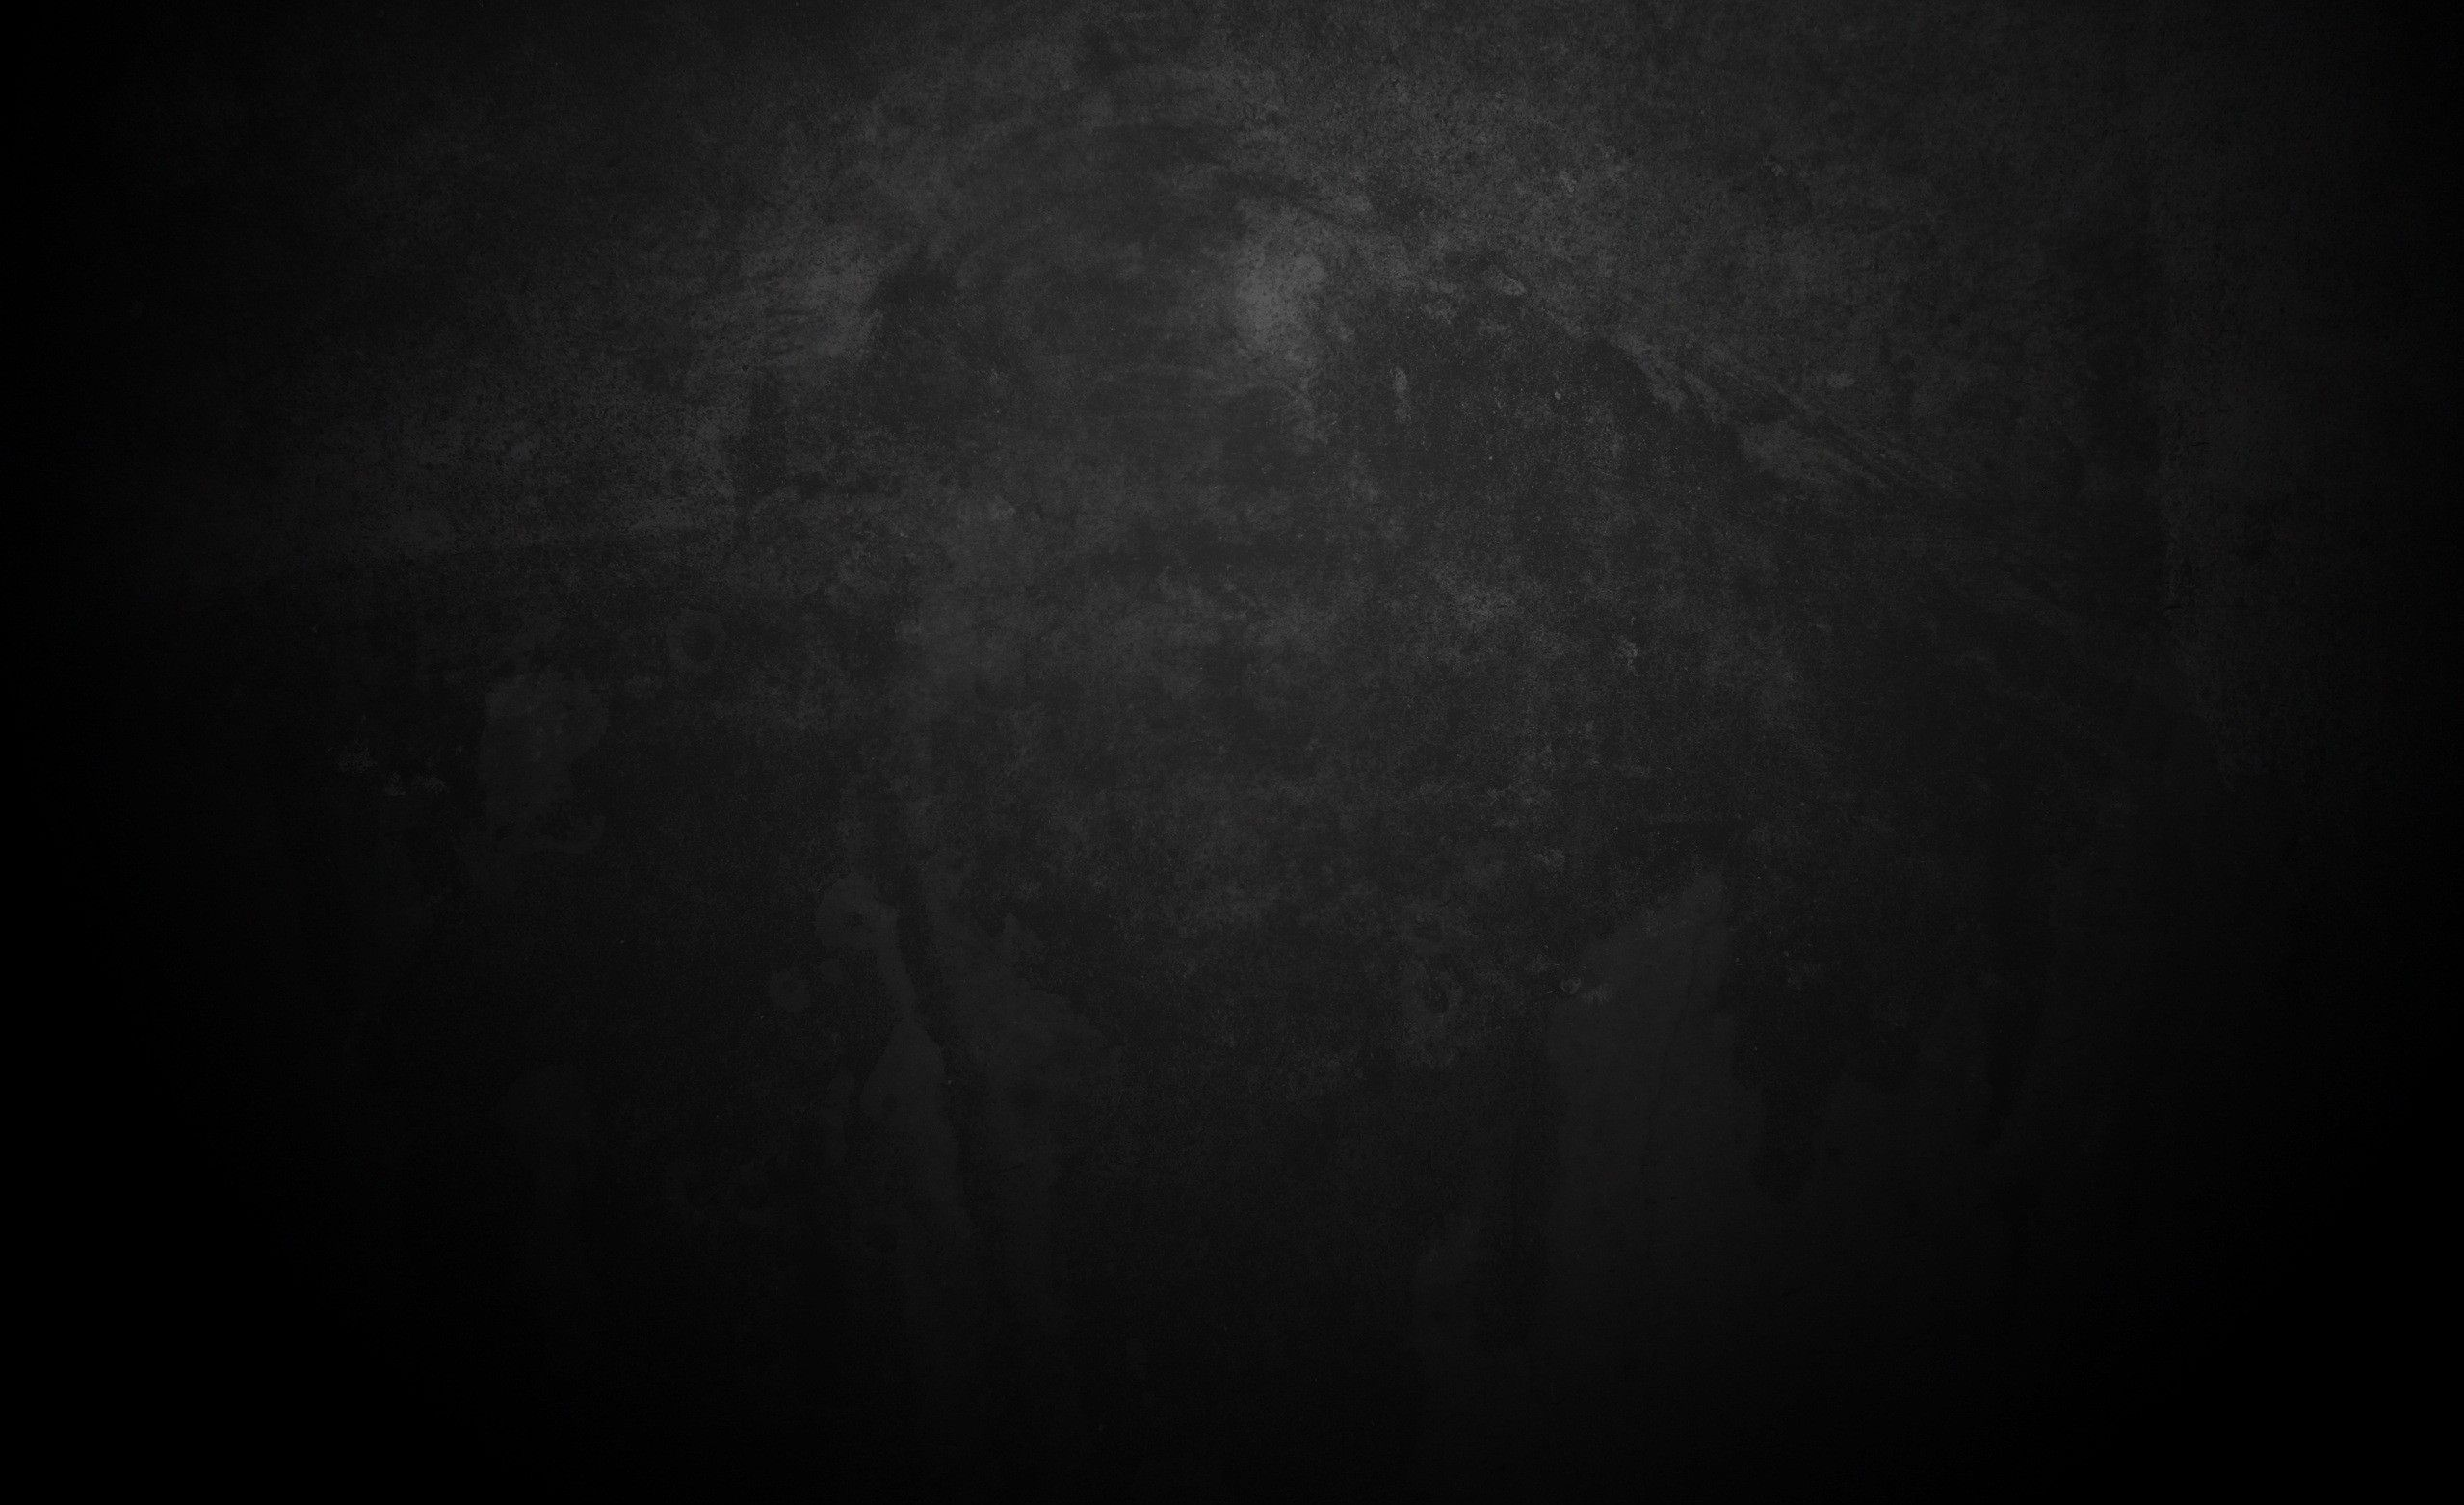 Black Dark Textures 2558x1562 Wallpaper